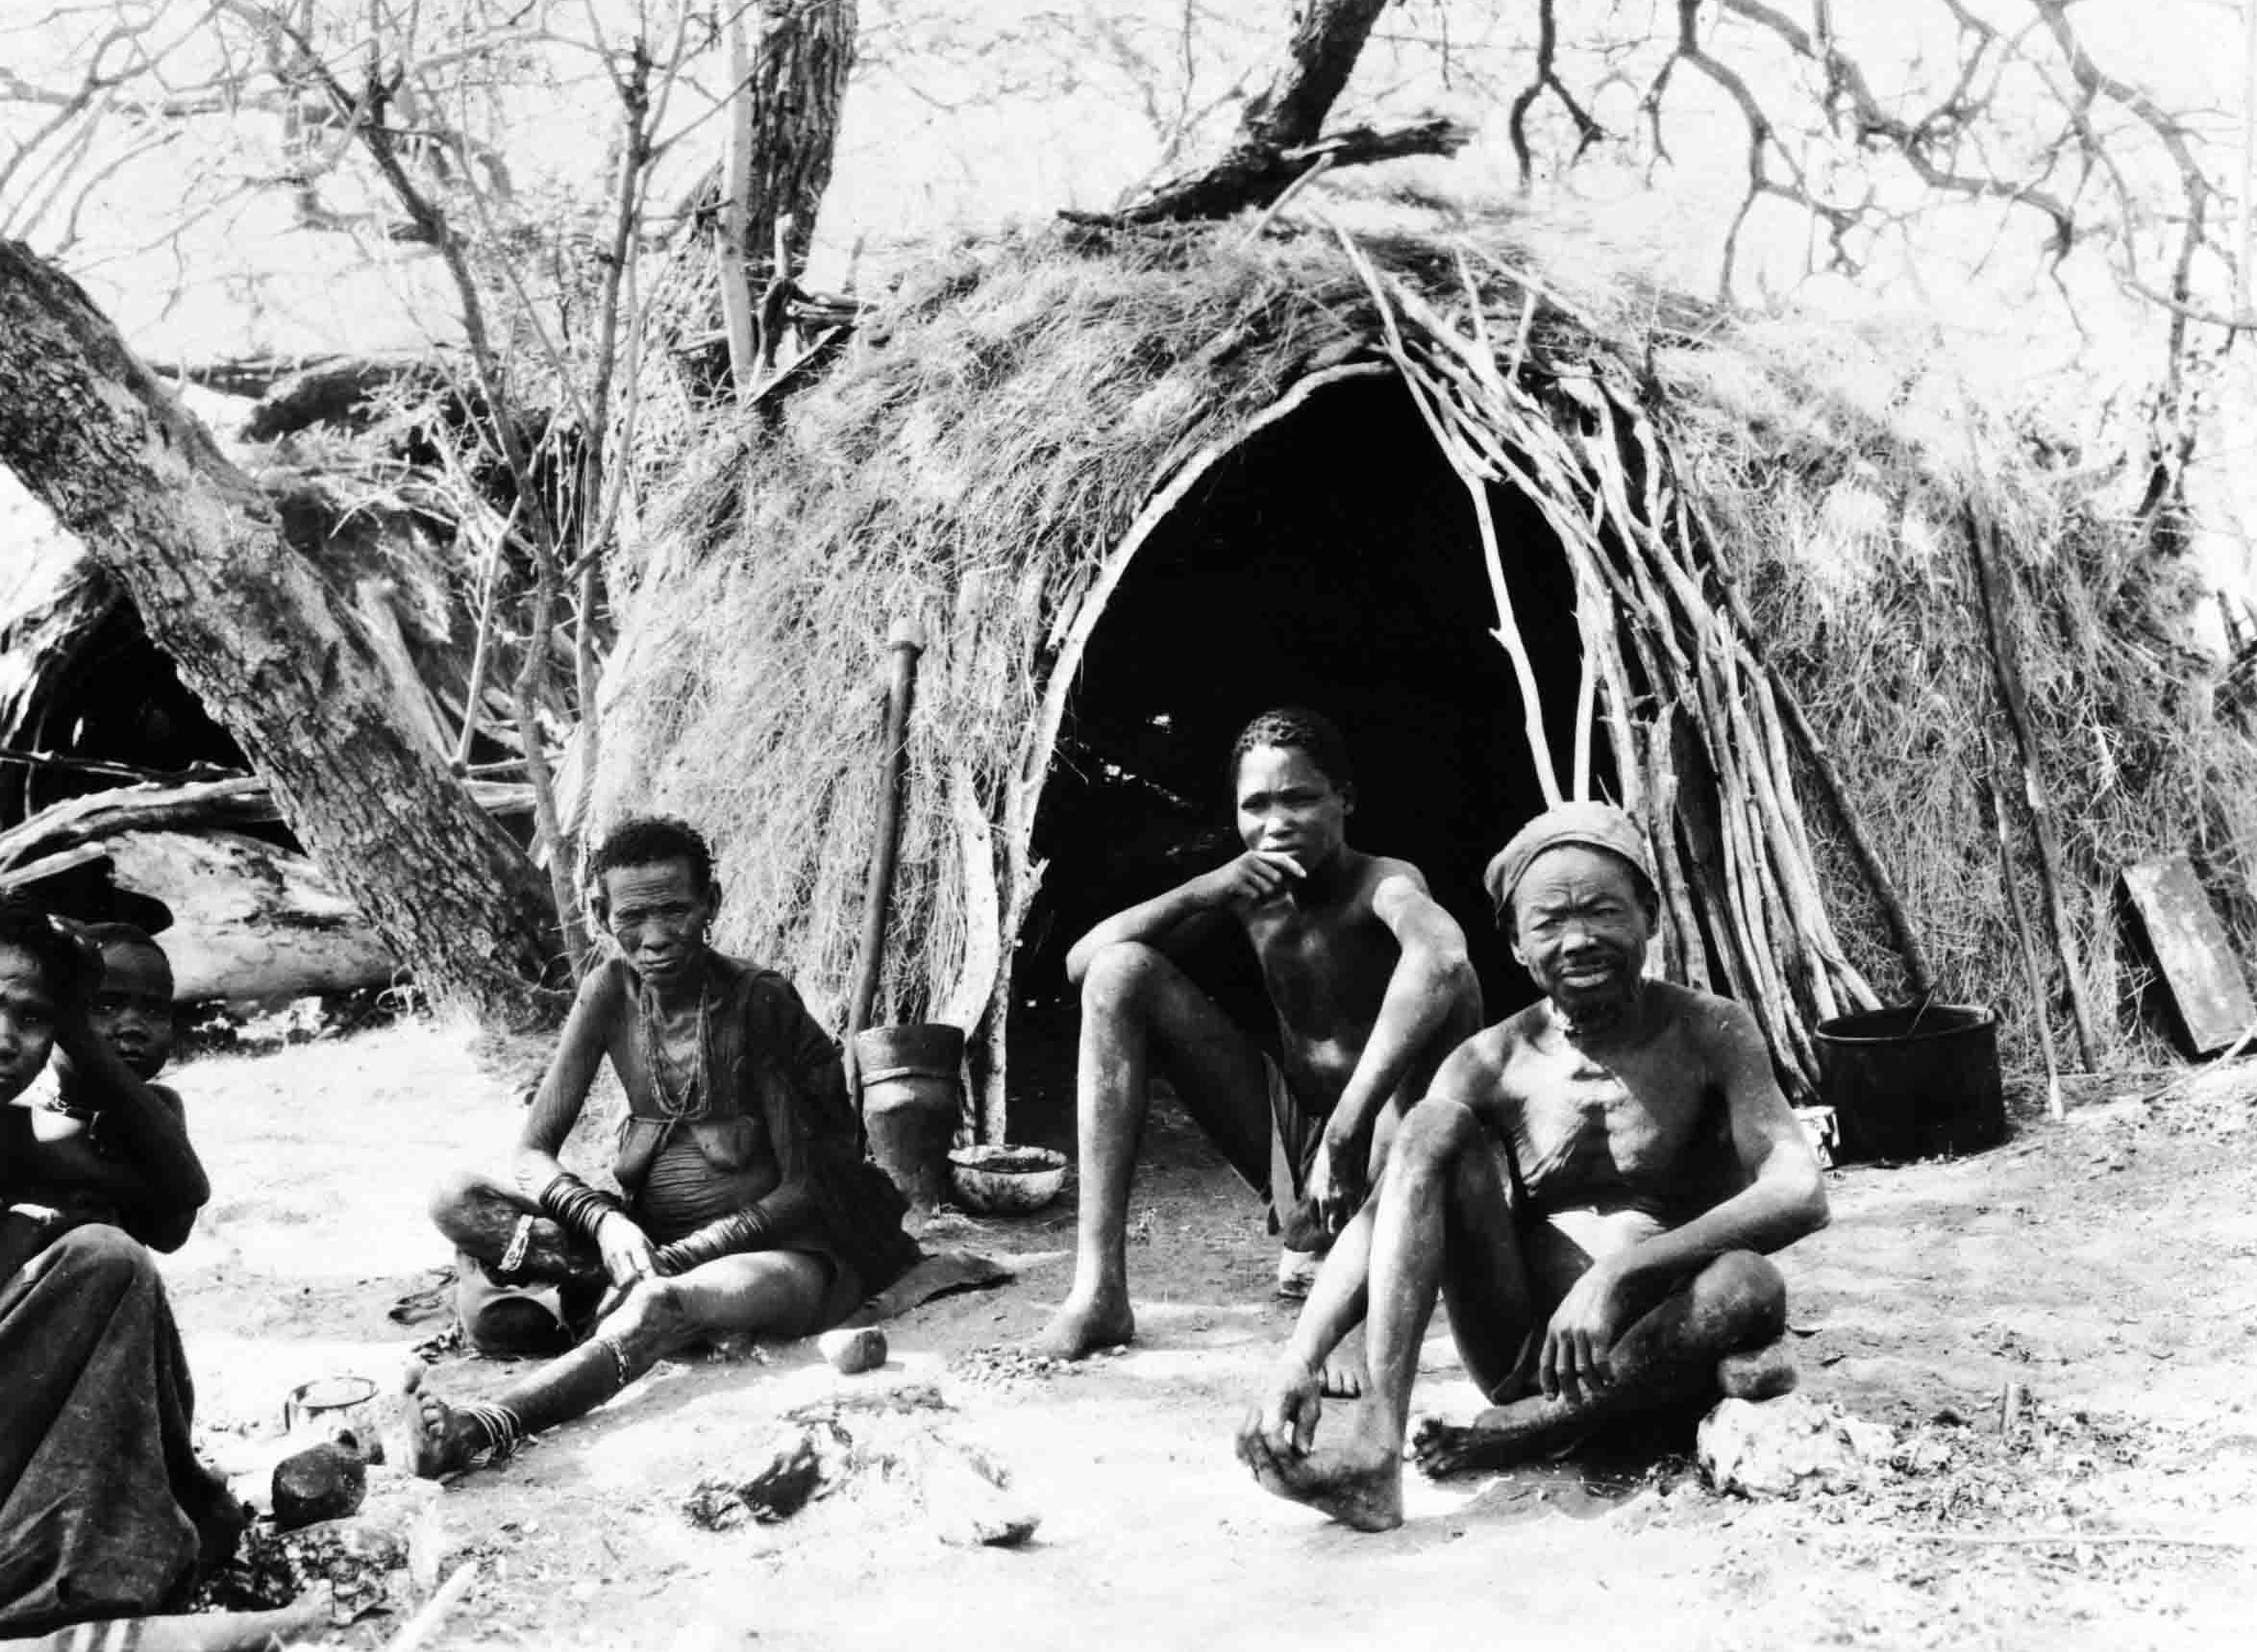 http://upload.wikimedia.org/wikipedia/commons/7/71/Bushmen_San.jpg